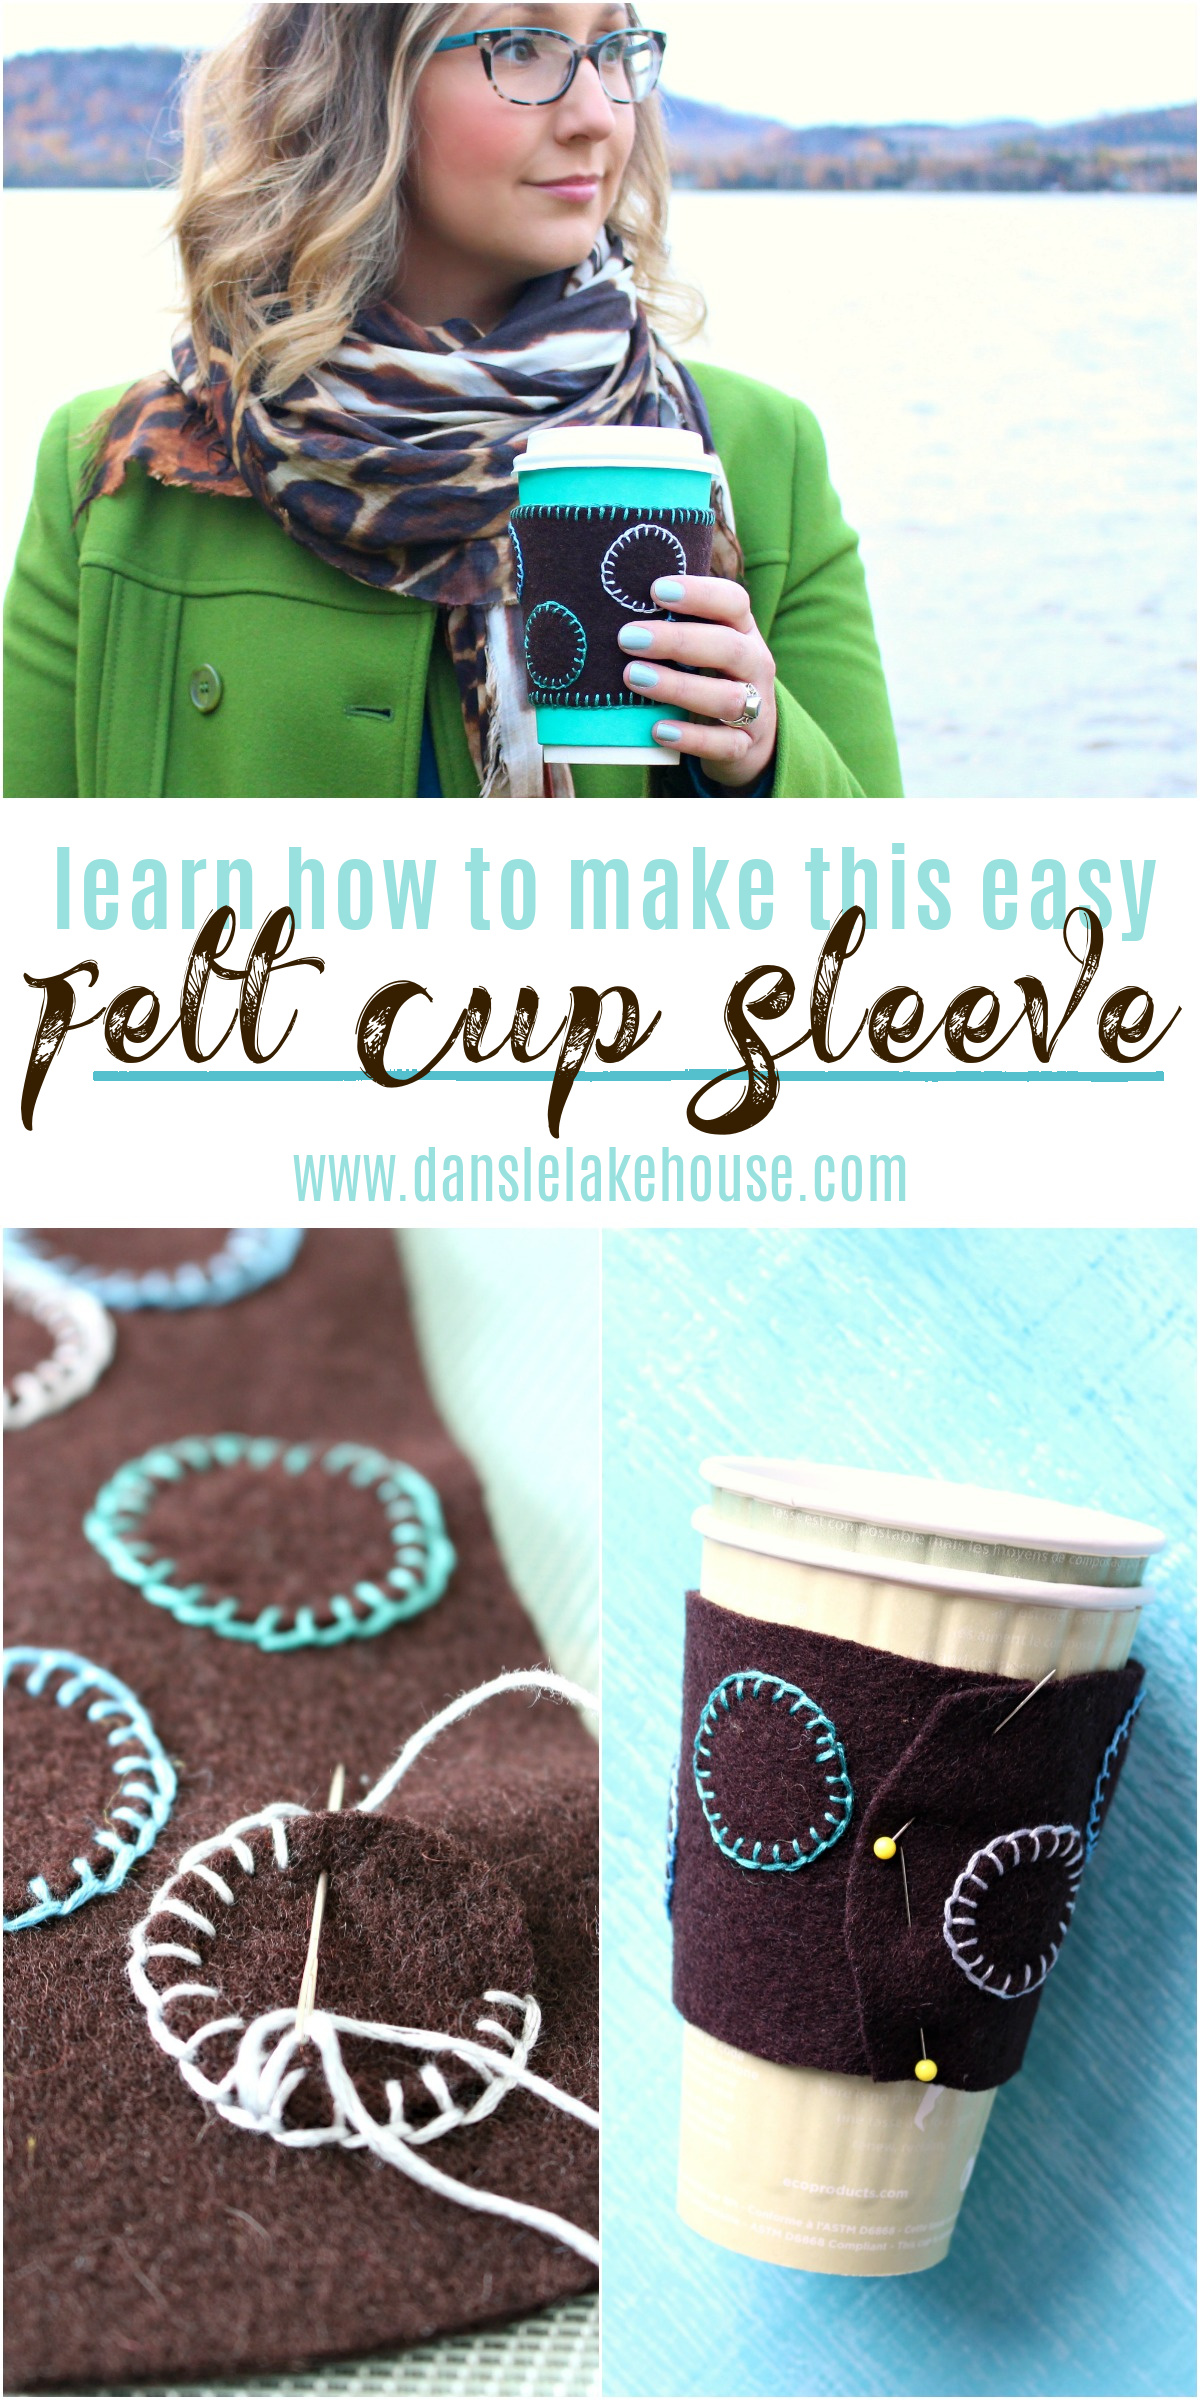 DIY Felt Cup Sleeve Tutorial